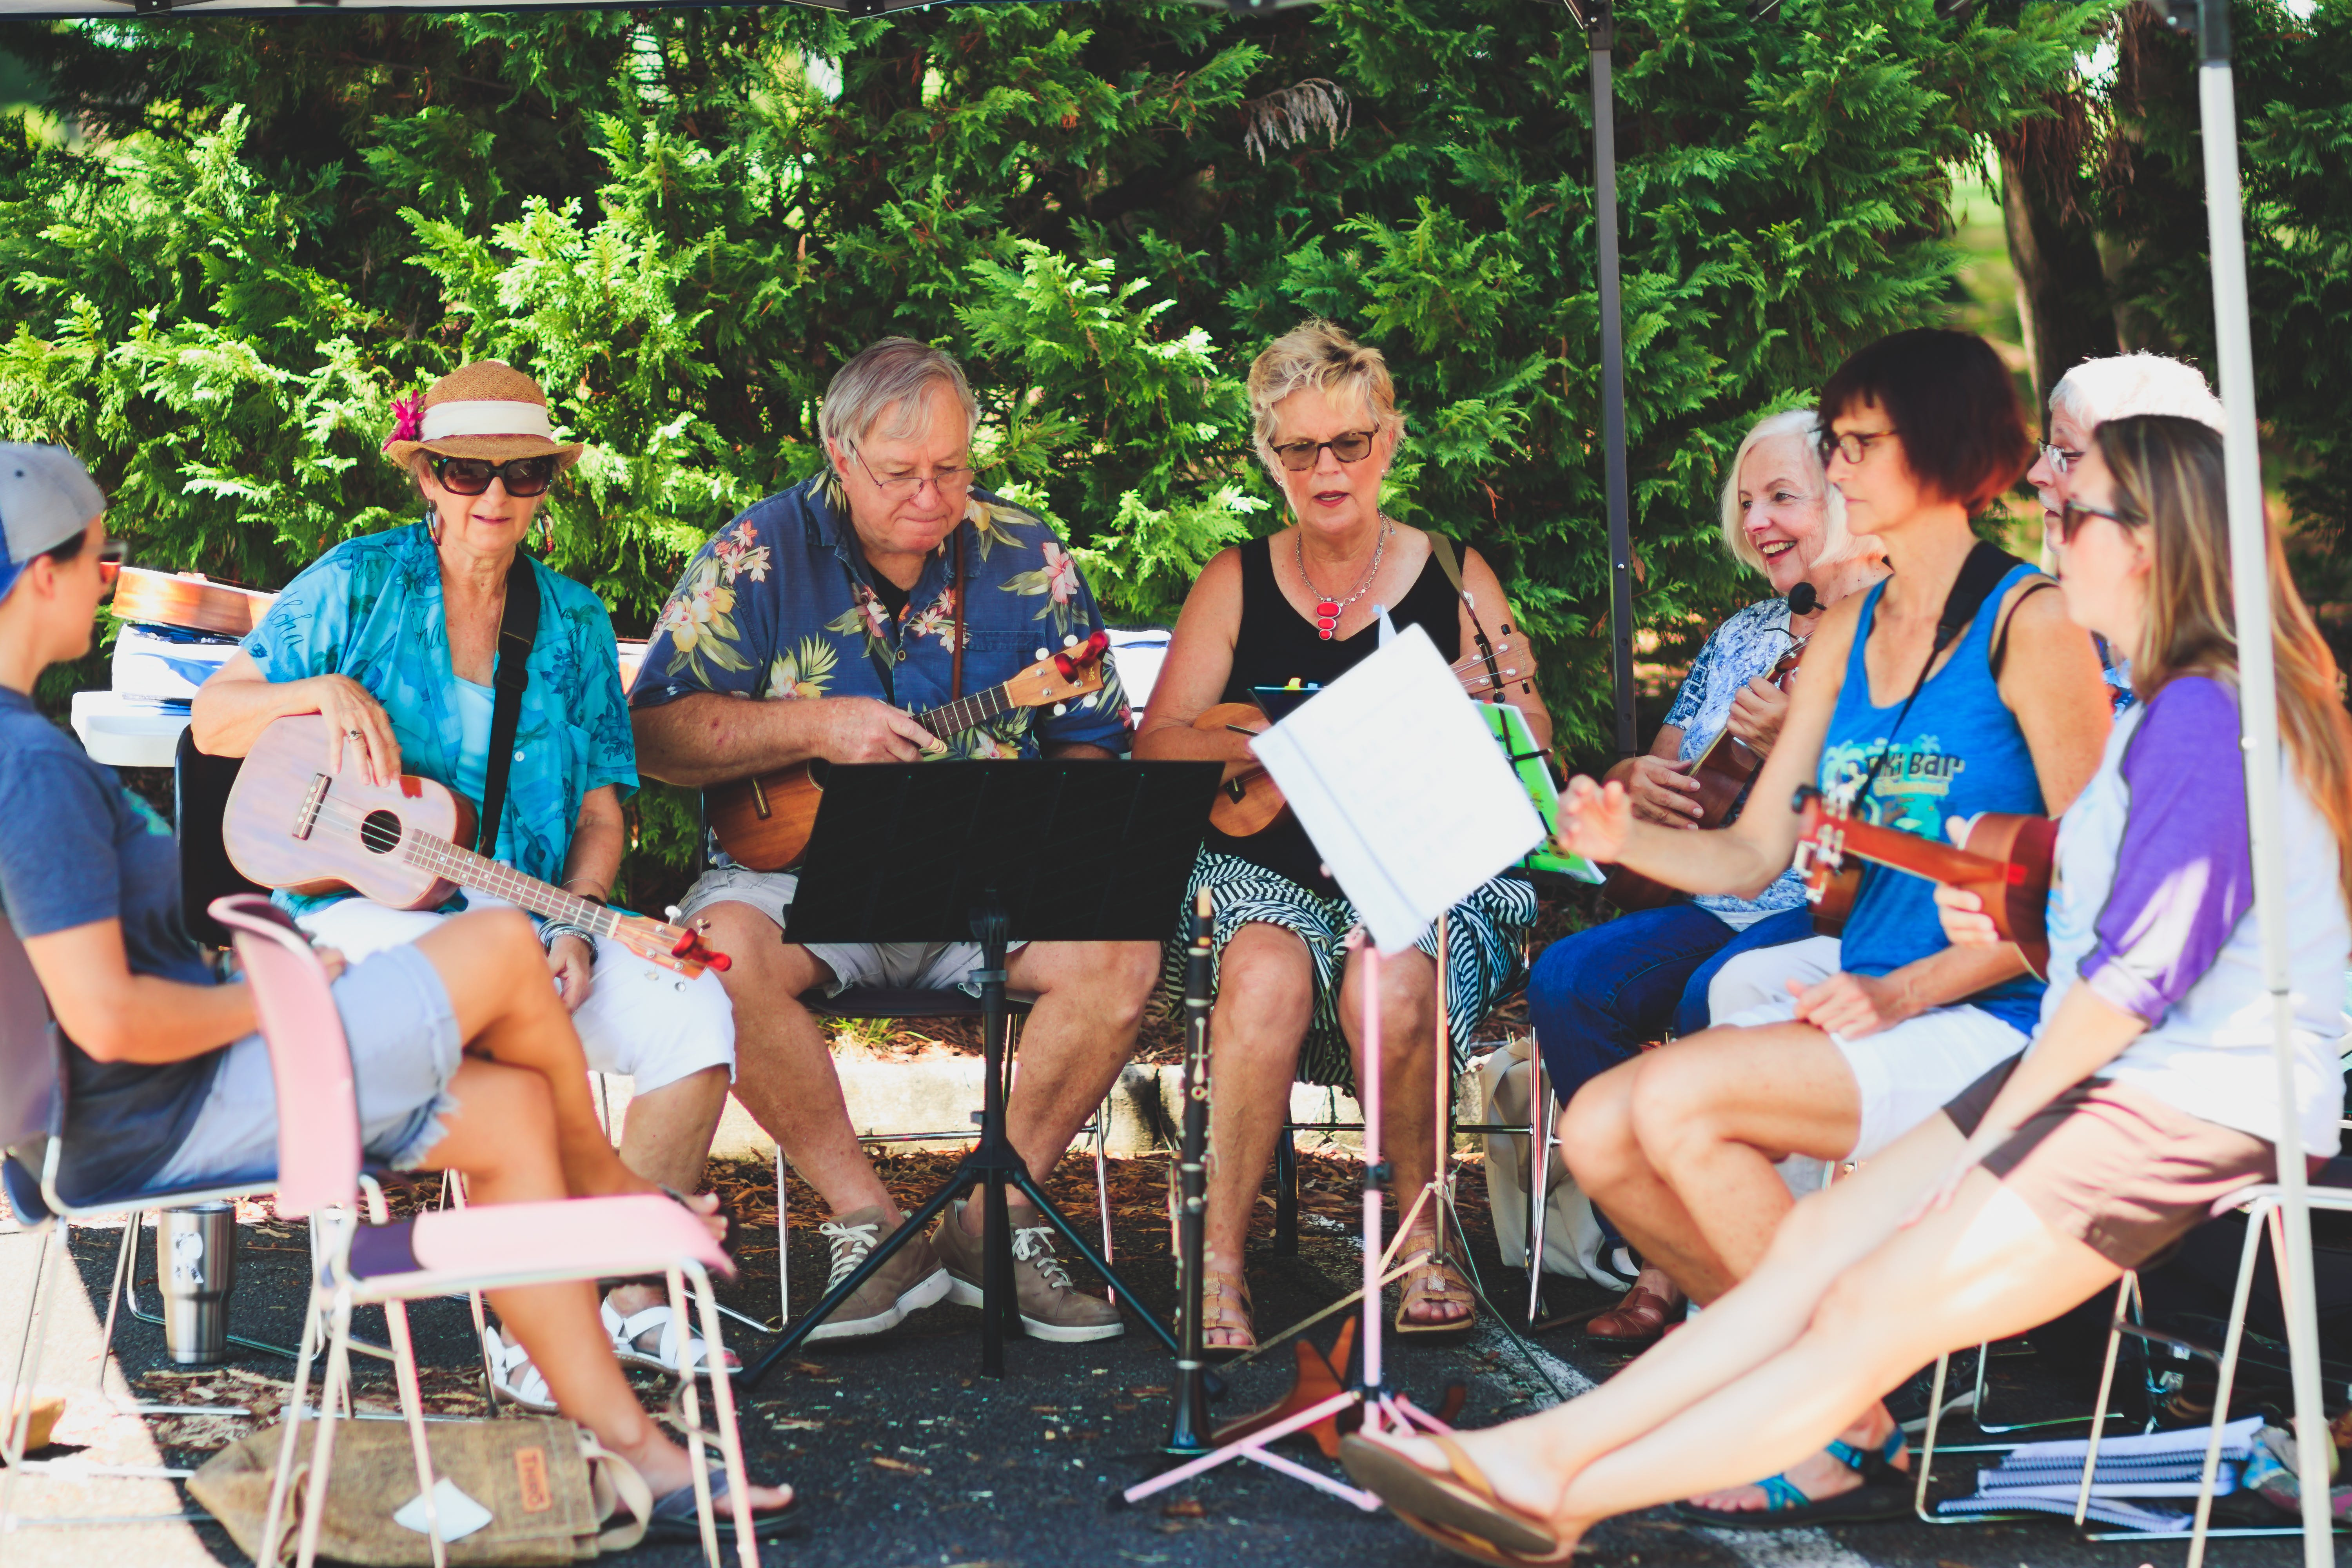 Group of People Sitting Down Playing Music Instruments